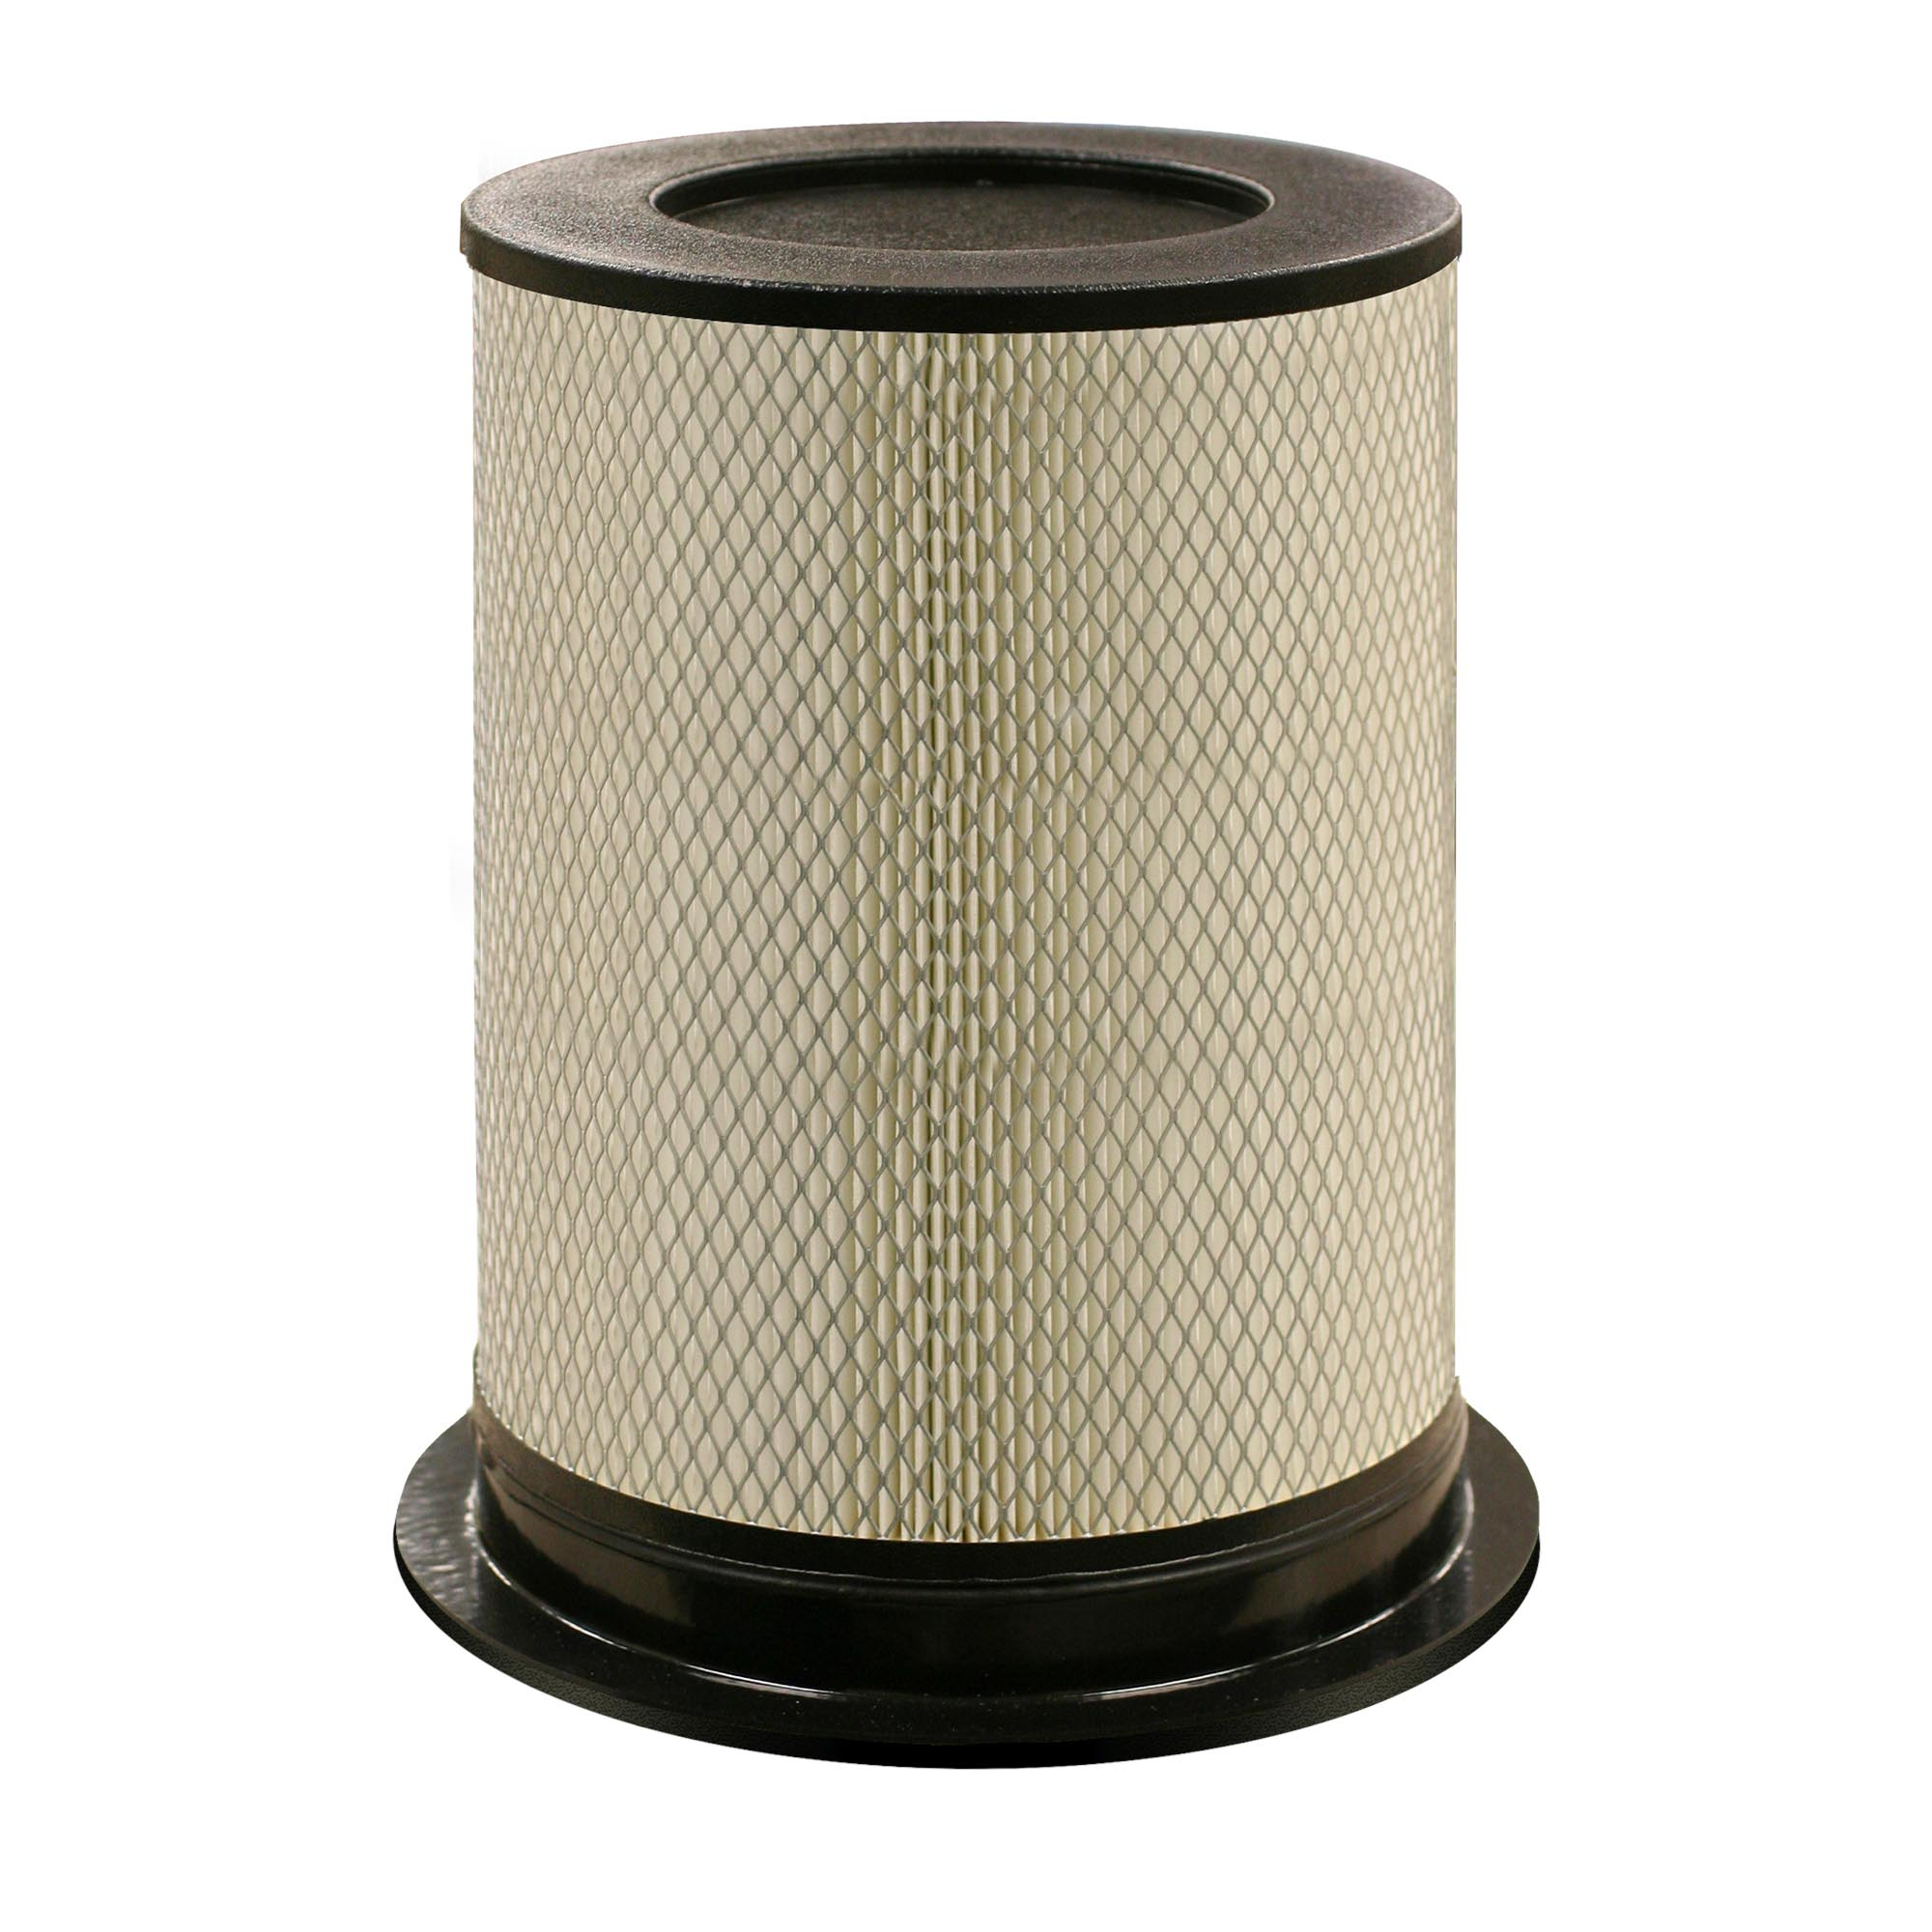 Model 901357 Replacement HEPA Filter